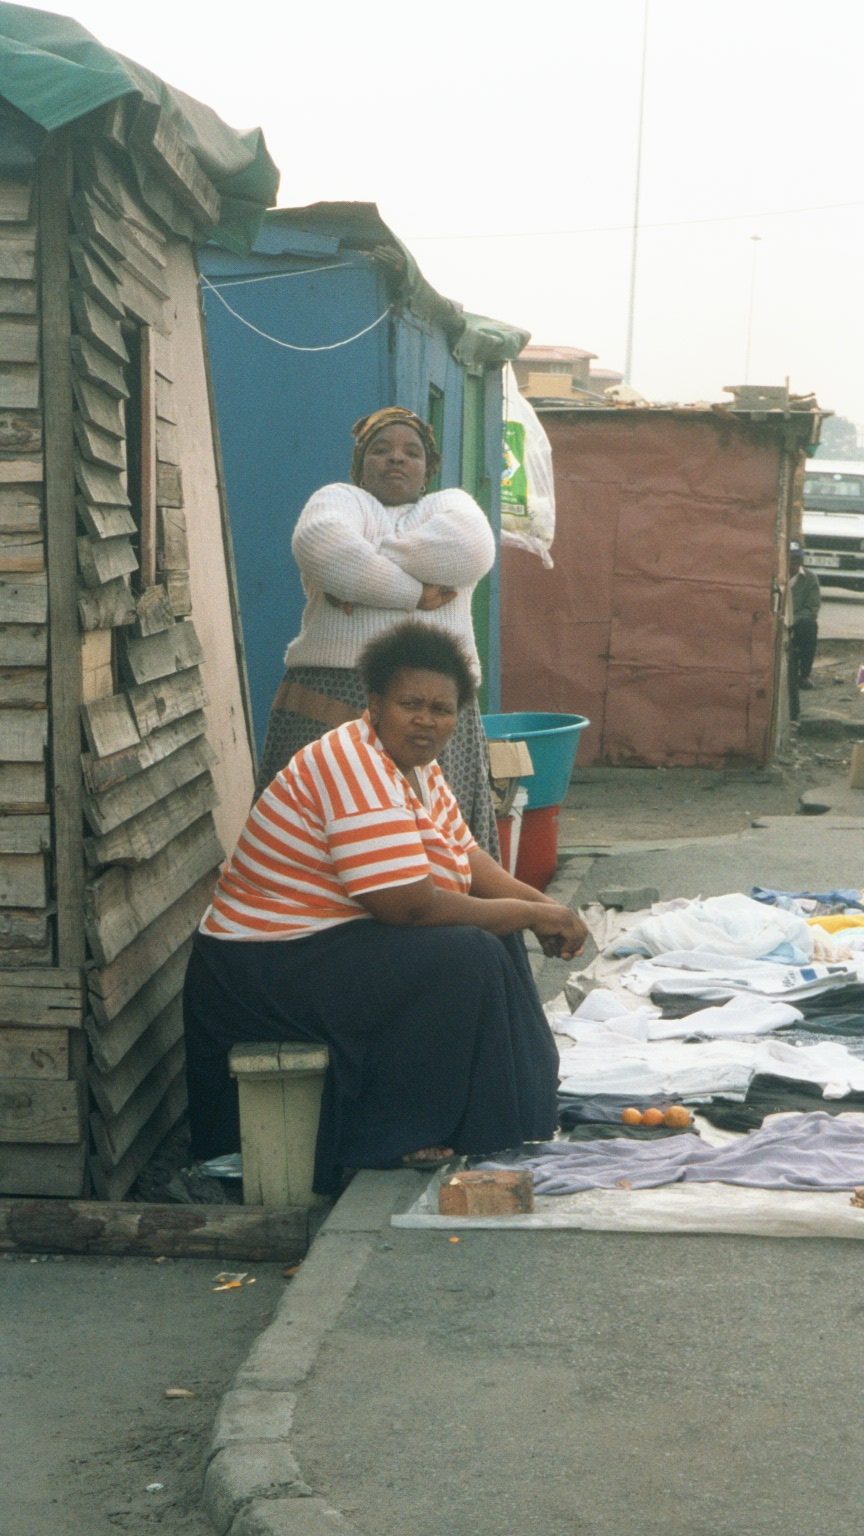 Women doing laundry